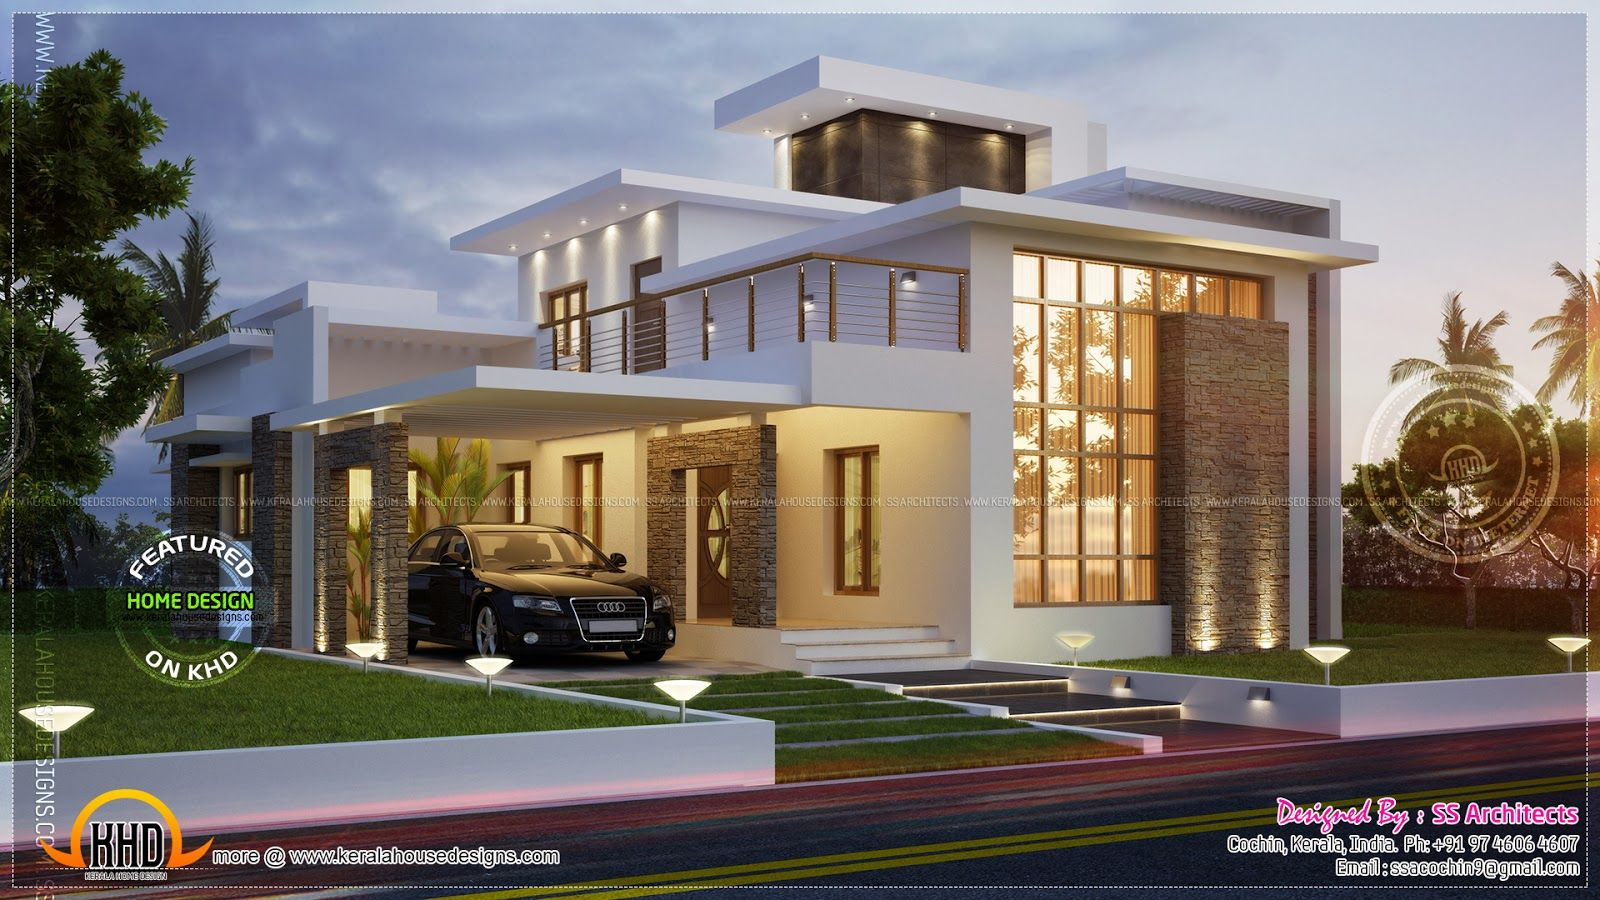 Sq feet contemporary house kerala home design floor plans for Small contemporary house plans in kerala